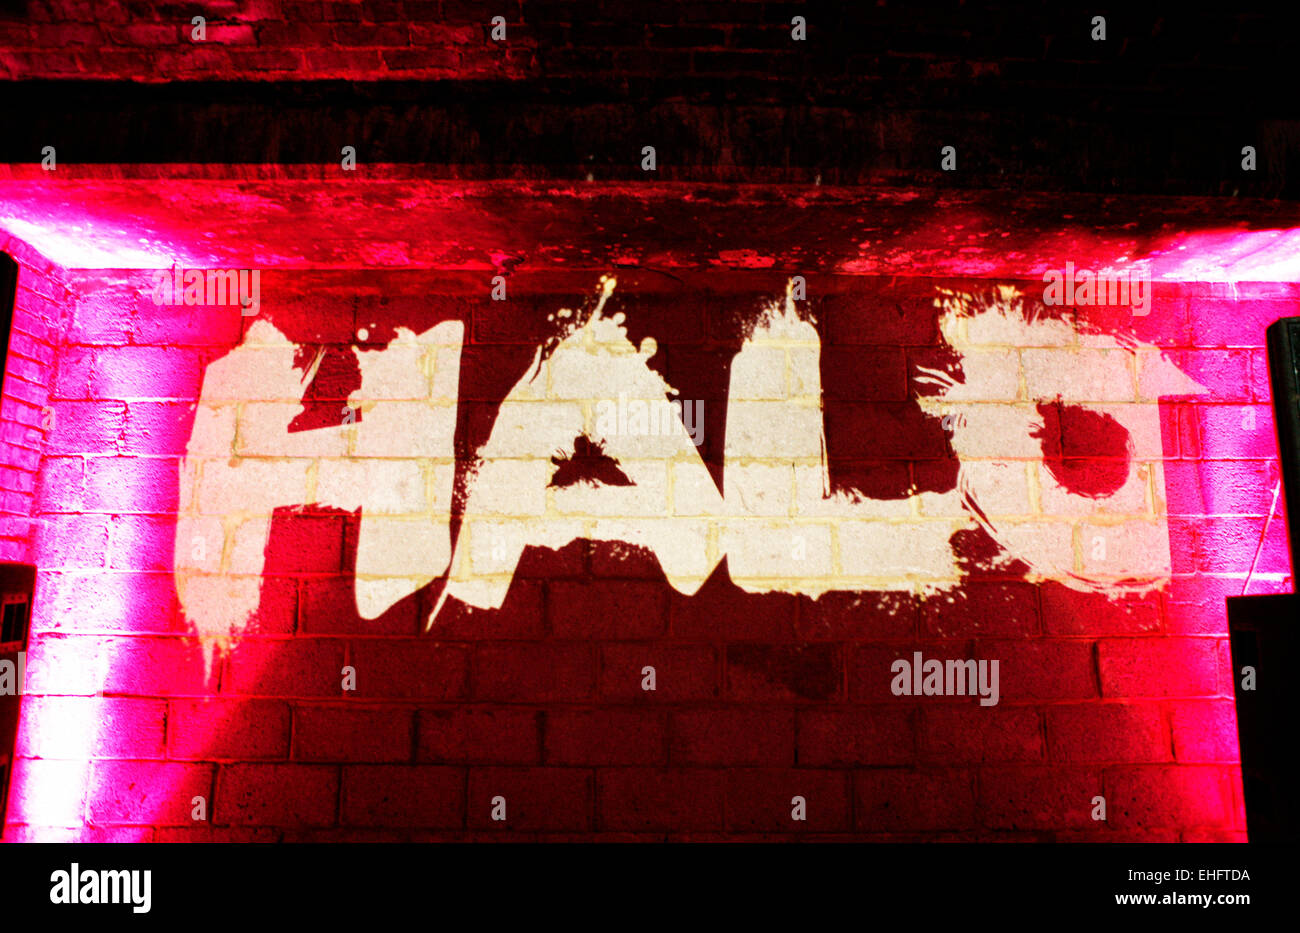 Halo at TDK Cross Central Festival 2007 at Canvas in Kings Cross in London. - Stock Image